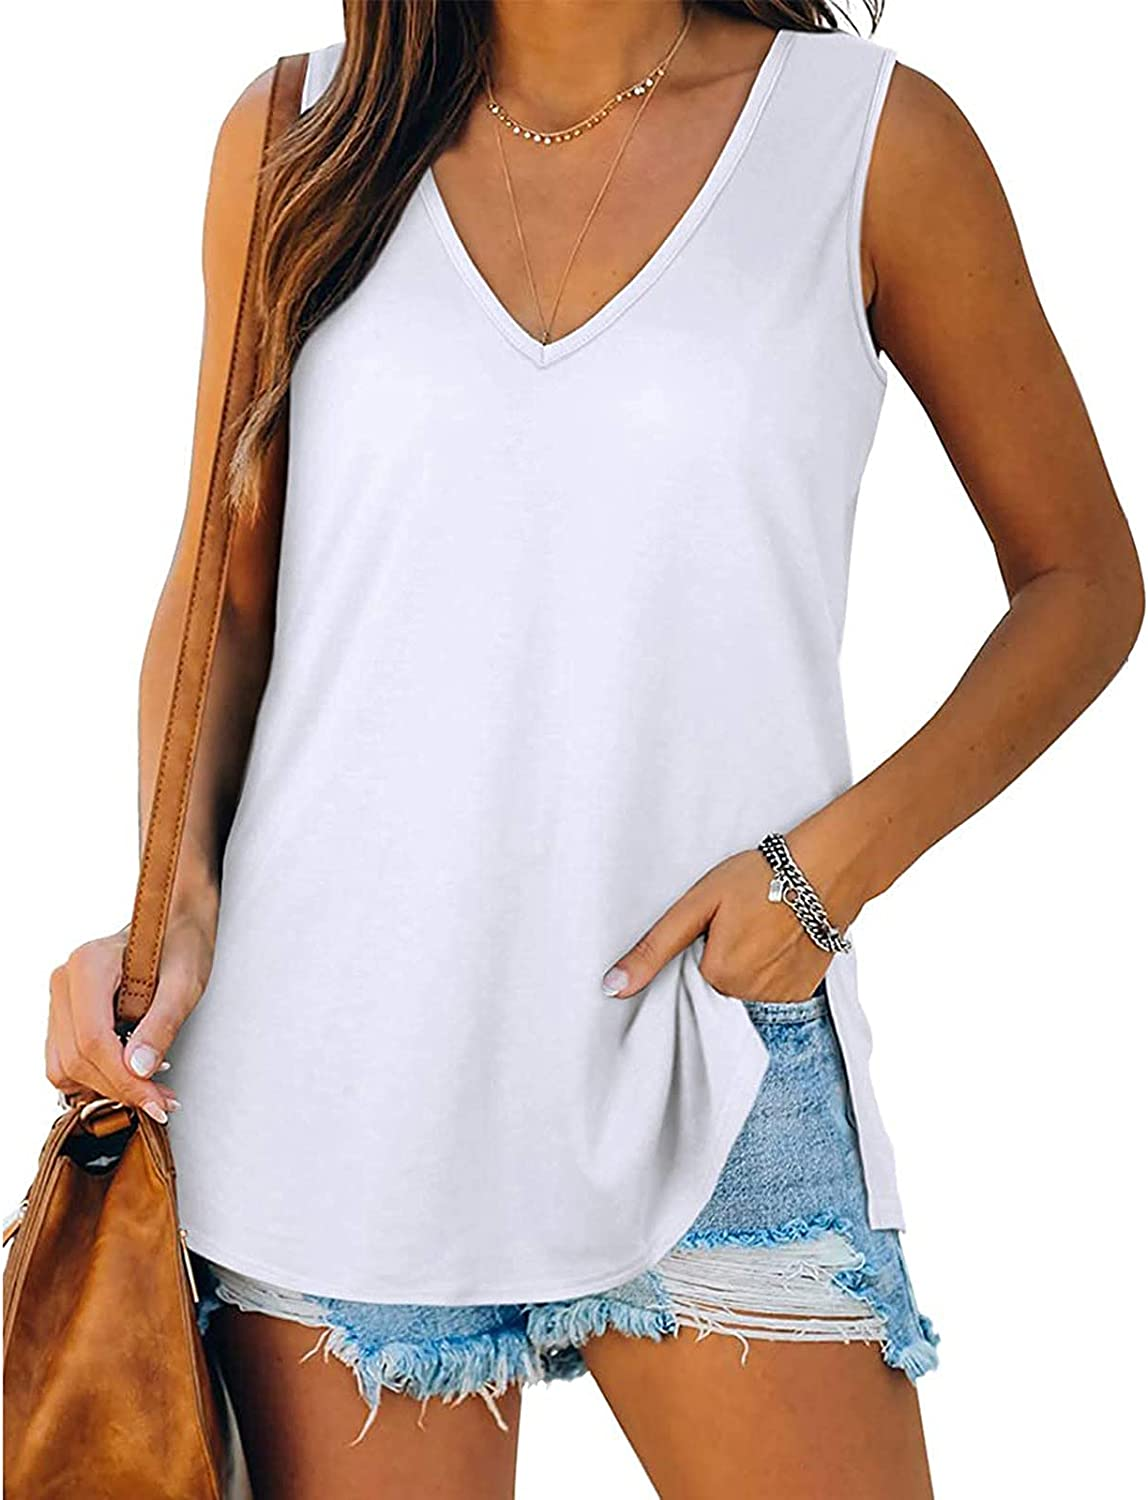 4Th of July Shirts Women Tank Top,Womens Tank Tops Summer Loose Fit Color Block Casual Sleeveless Tshirts